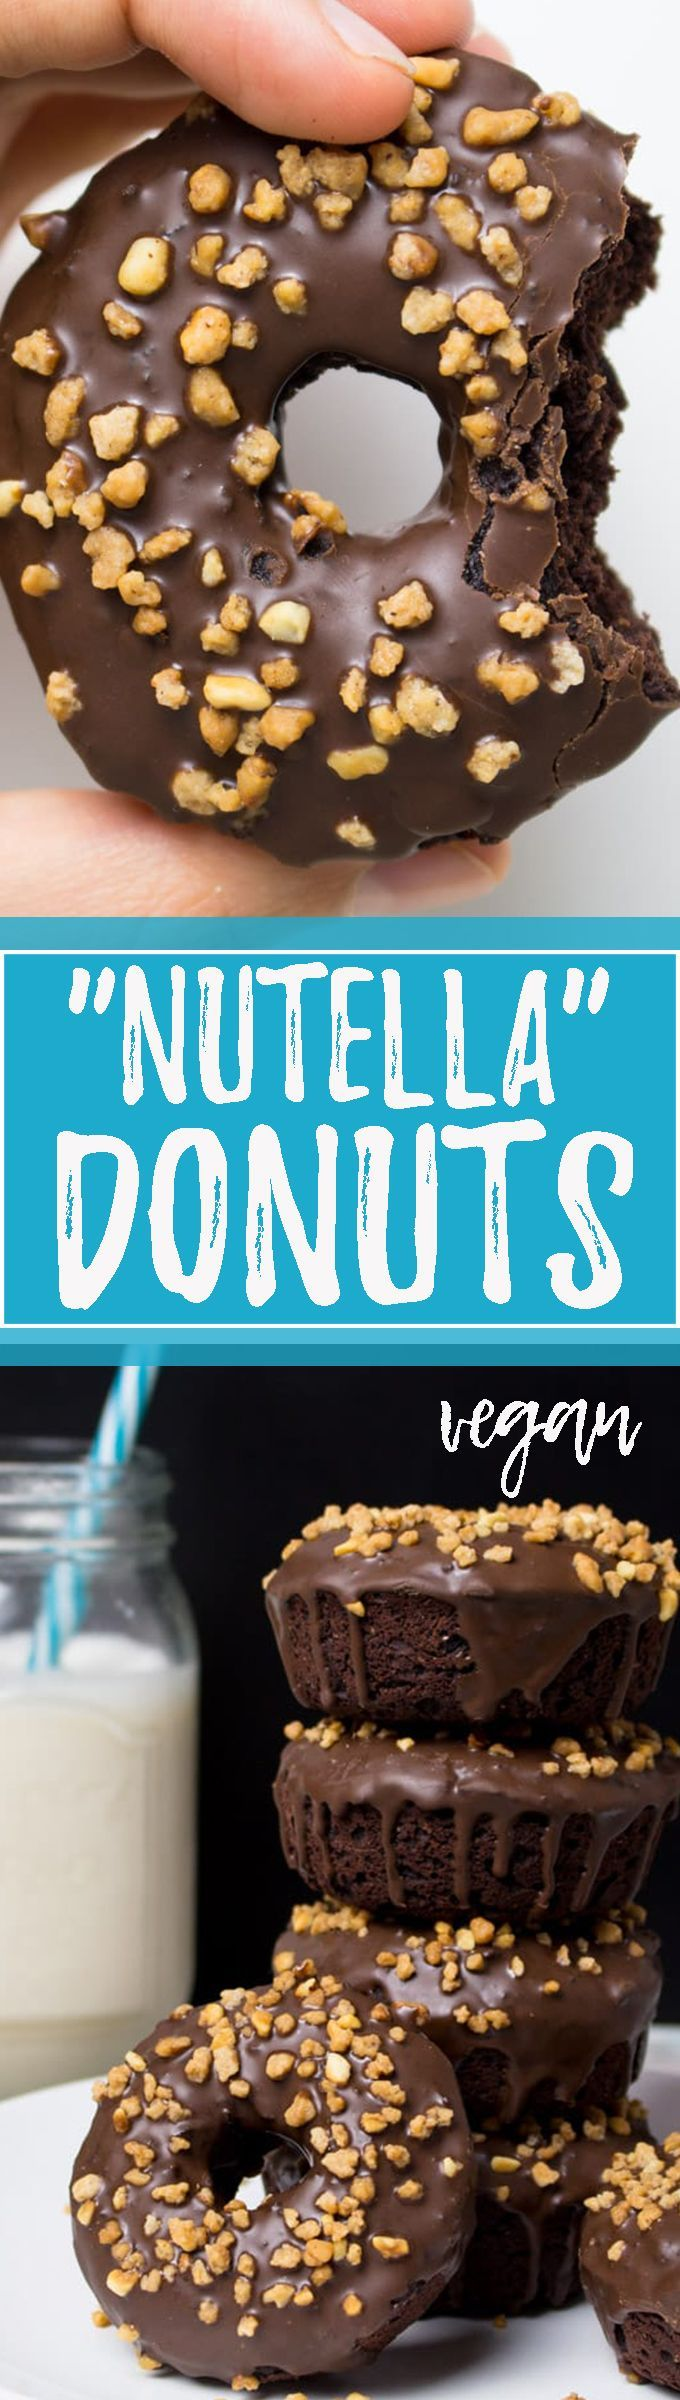 "These vegan donuts with chocolate and hazelnuts (aka ""Nutella"" donuts) are my absolute favorite! And the best thing is that they're way healthier than regular donuts!"